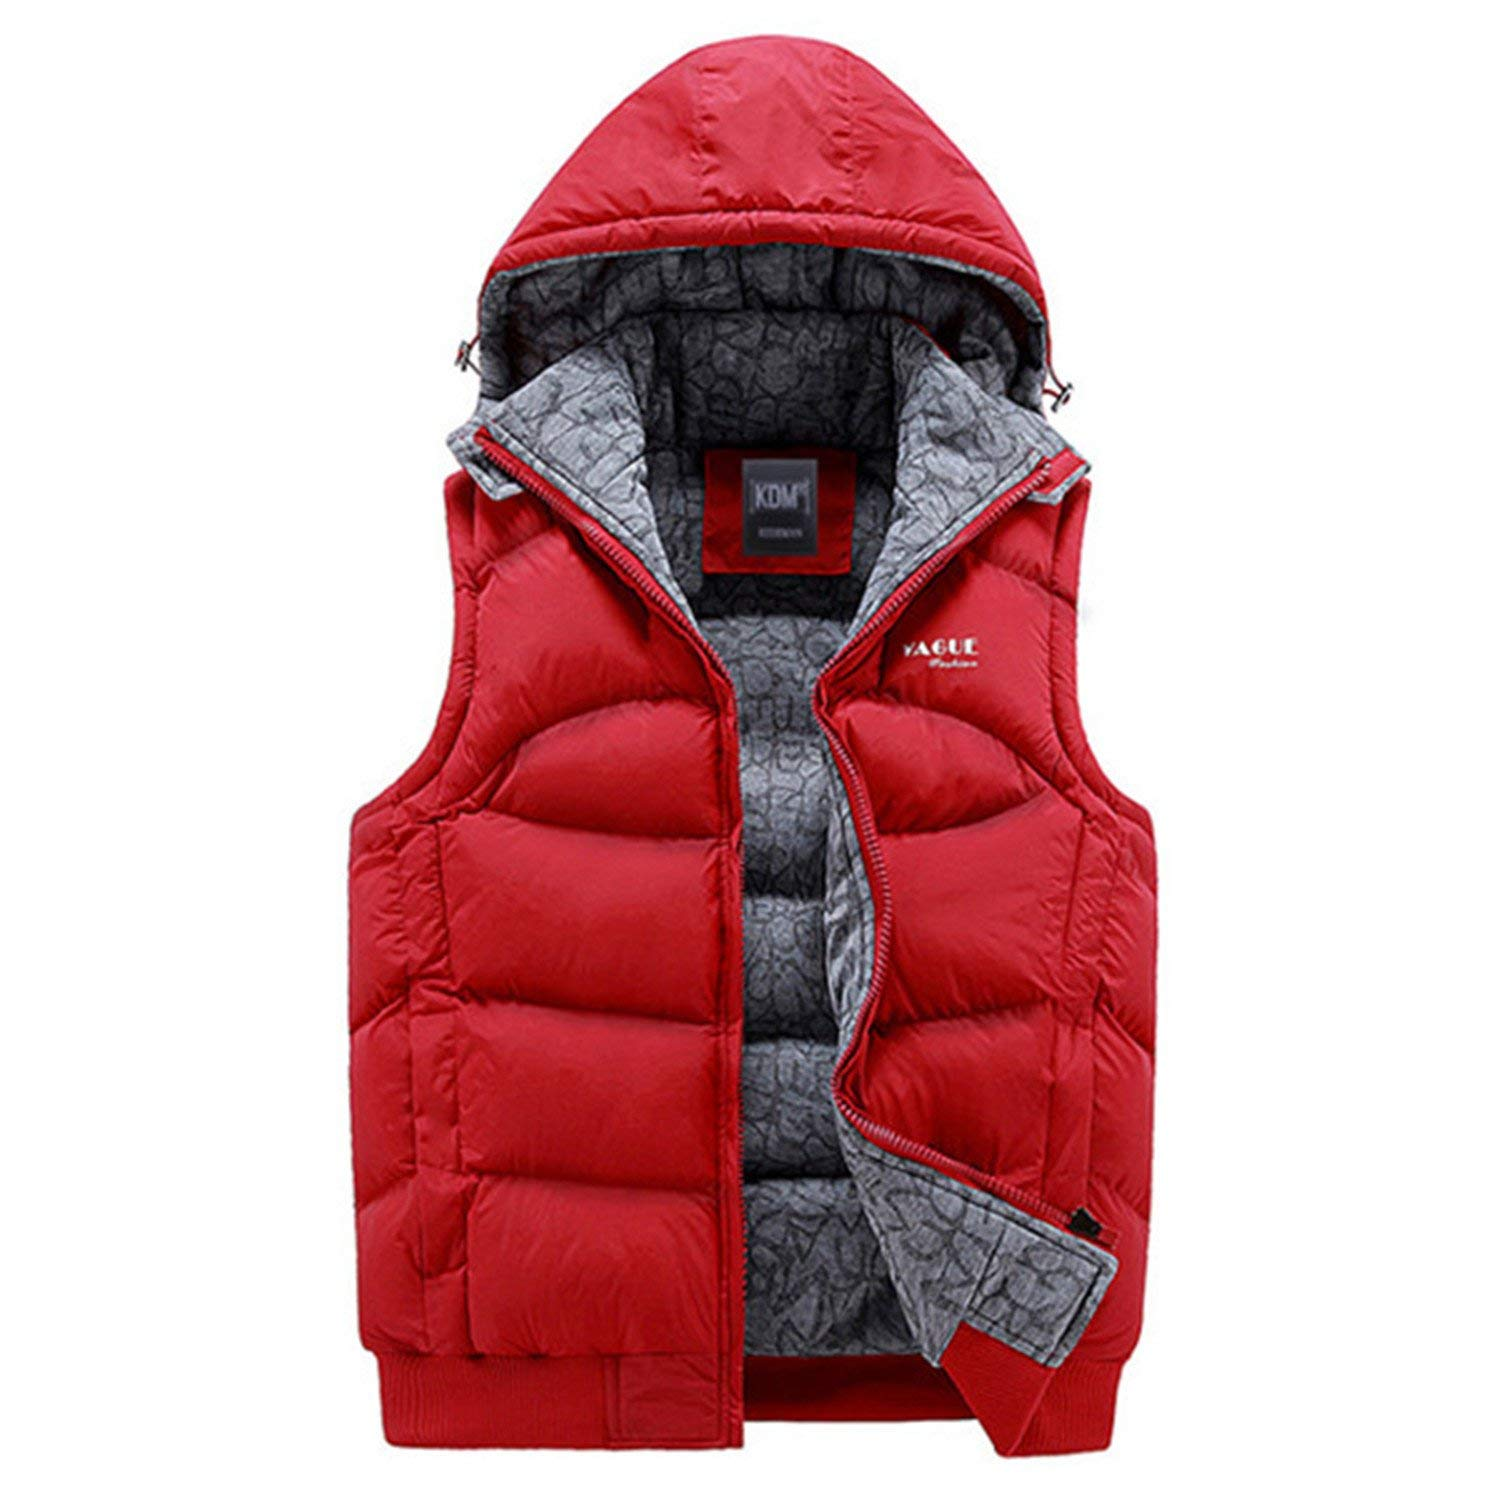 Jwhui Mens Jacket Sleeveless Vests Casual Coats Hooded Cotton-Padded Men Vest Men Thickening Waistcoat X356